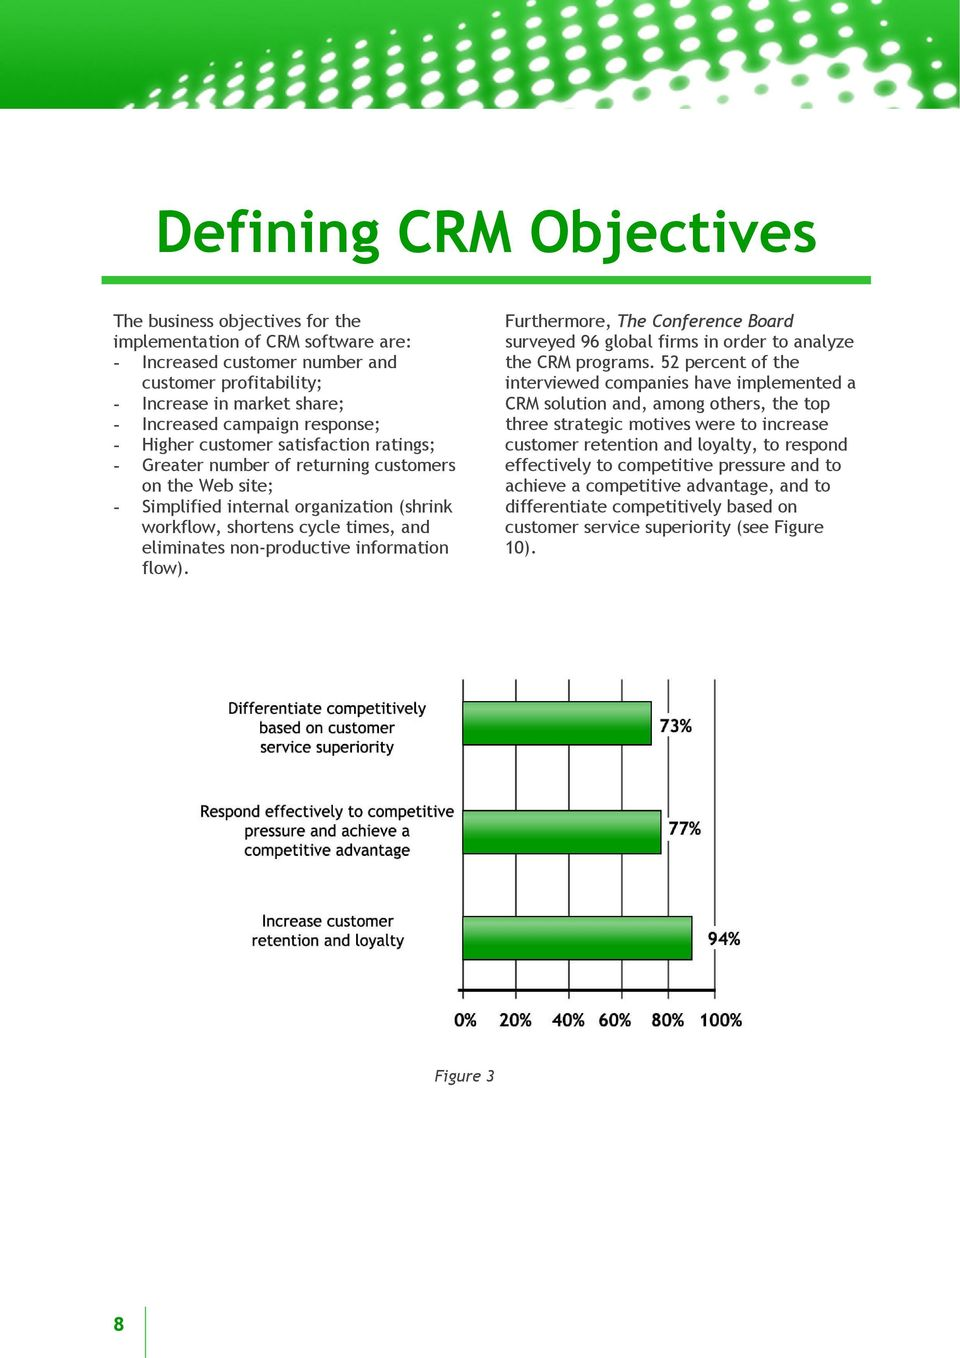 non-productive information flow). Furthermore, The Conference Board surveyed 96 global firms in order to analyze the CRM programs.